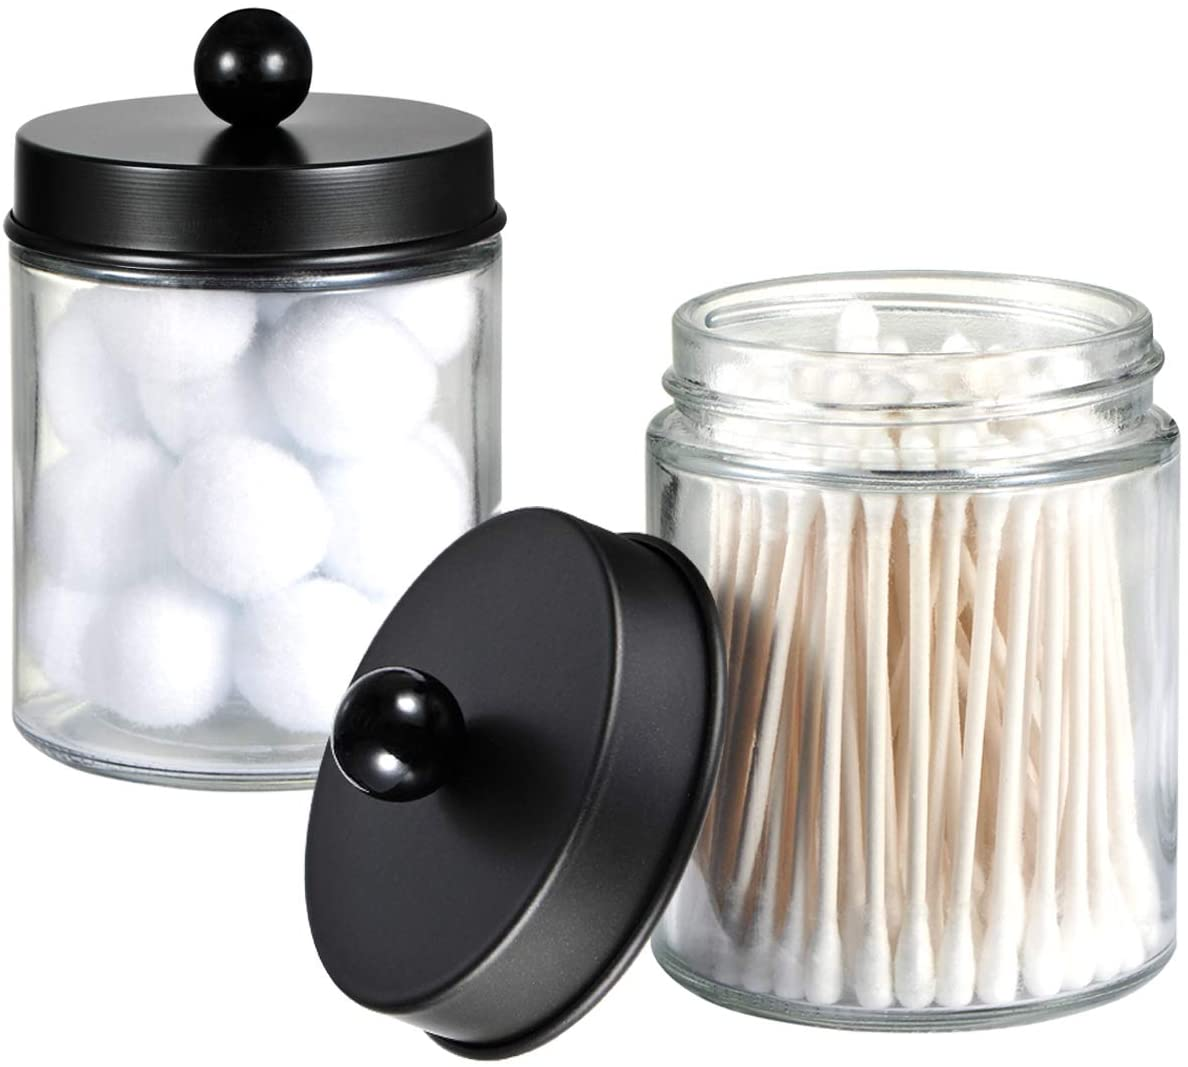 Amazon Com Apothecary Jars Bathroom Storage Organizer Cute Qtip Dispenser Holder Vanity Canister Jar Glass With Lid For Cotton Swabs Rounds Bath Salts Makeup Sponges Hair Accessories Black 2 Pack Home Kitchen